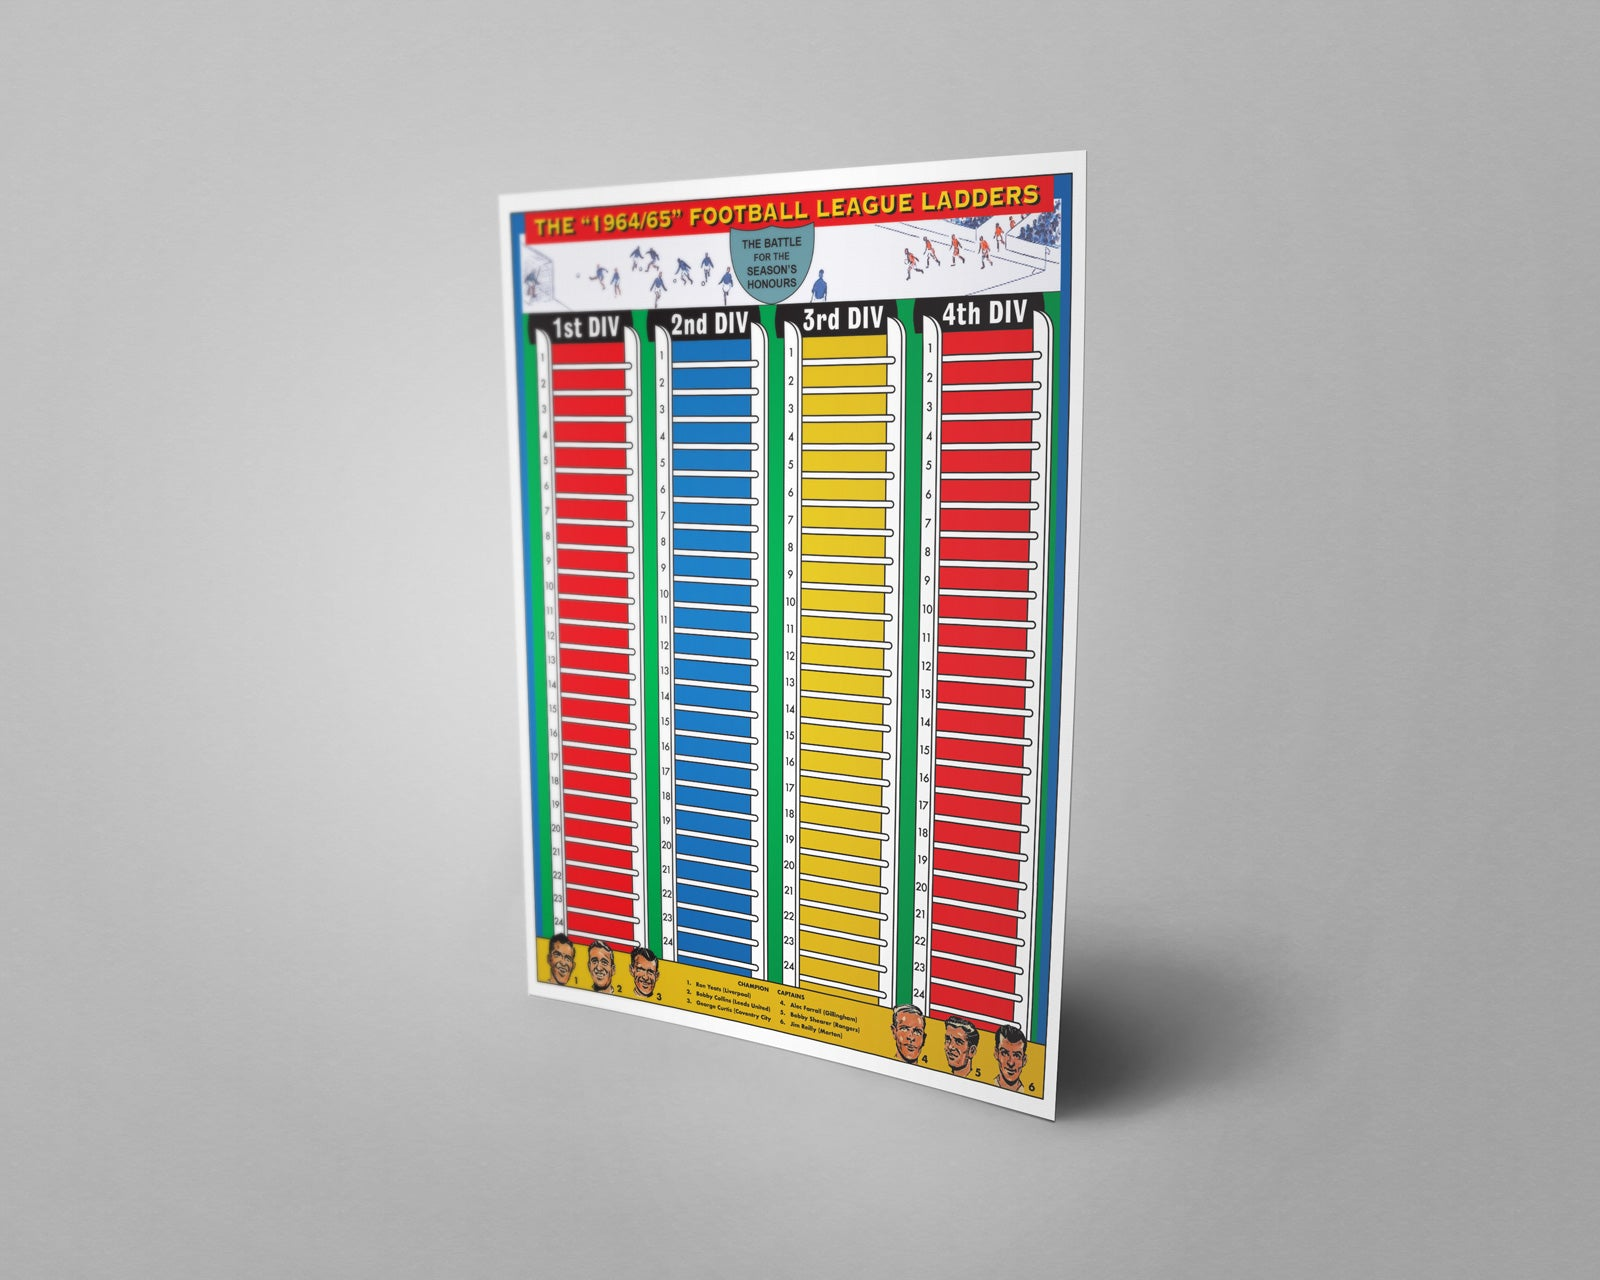 1960's Style National League Steps 1 & 2 2018/2019 Season League Ladders - NEW!